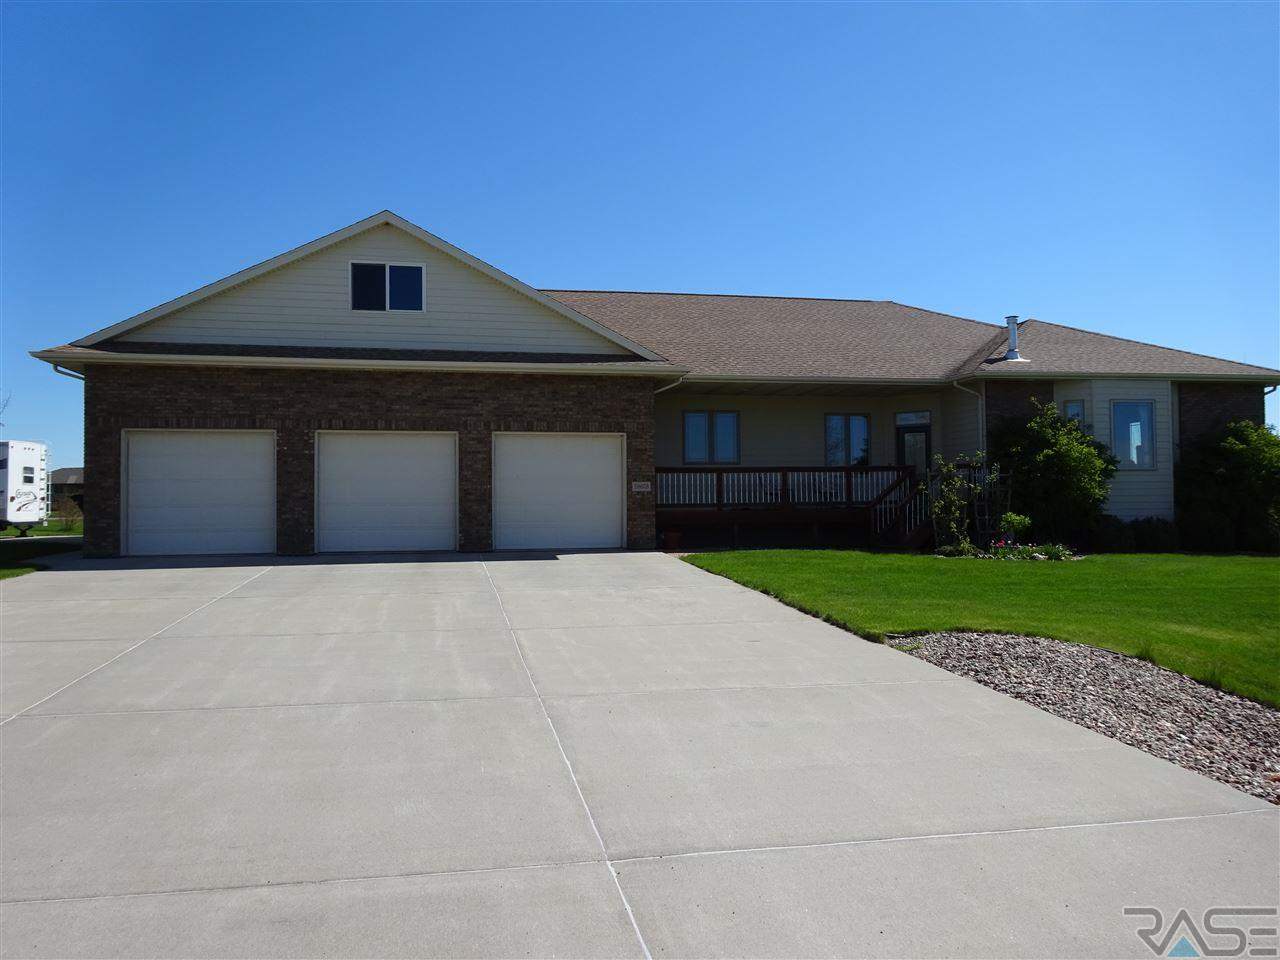 26628 Tucker Dr, Brandon, SD 57005